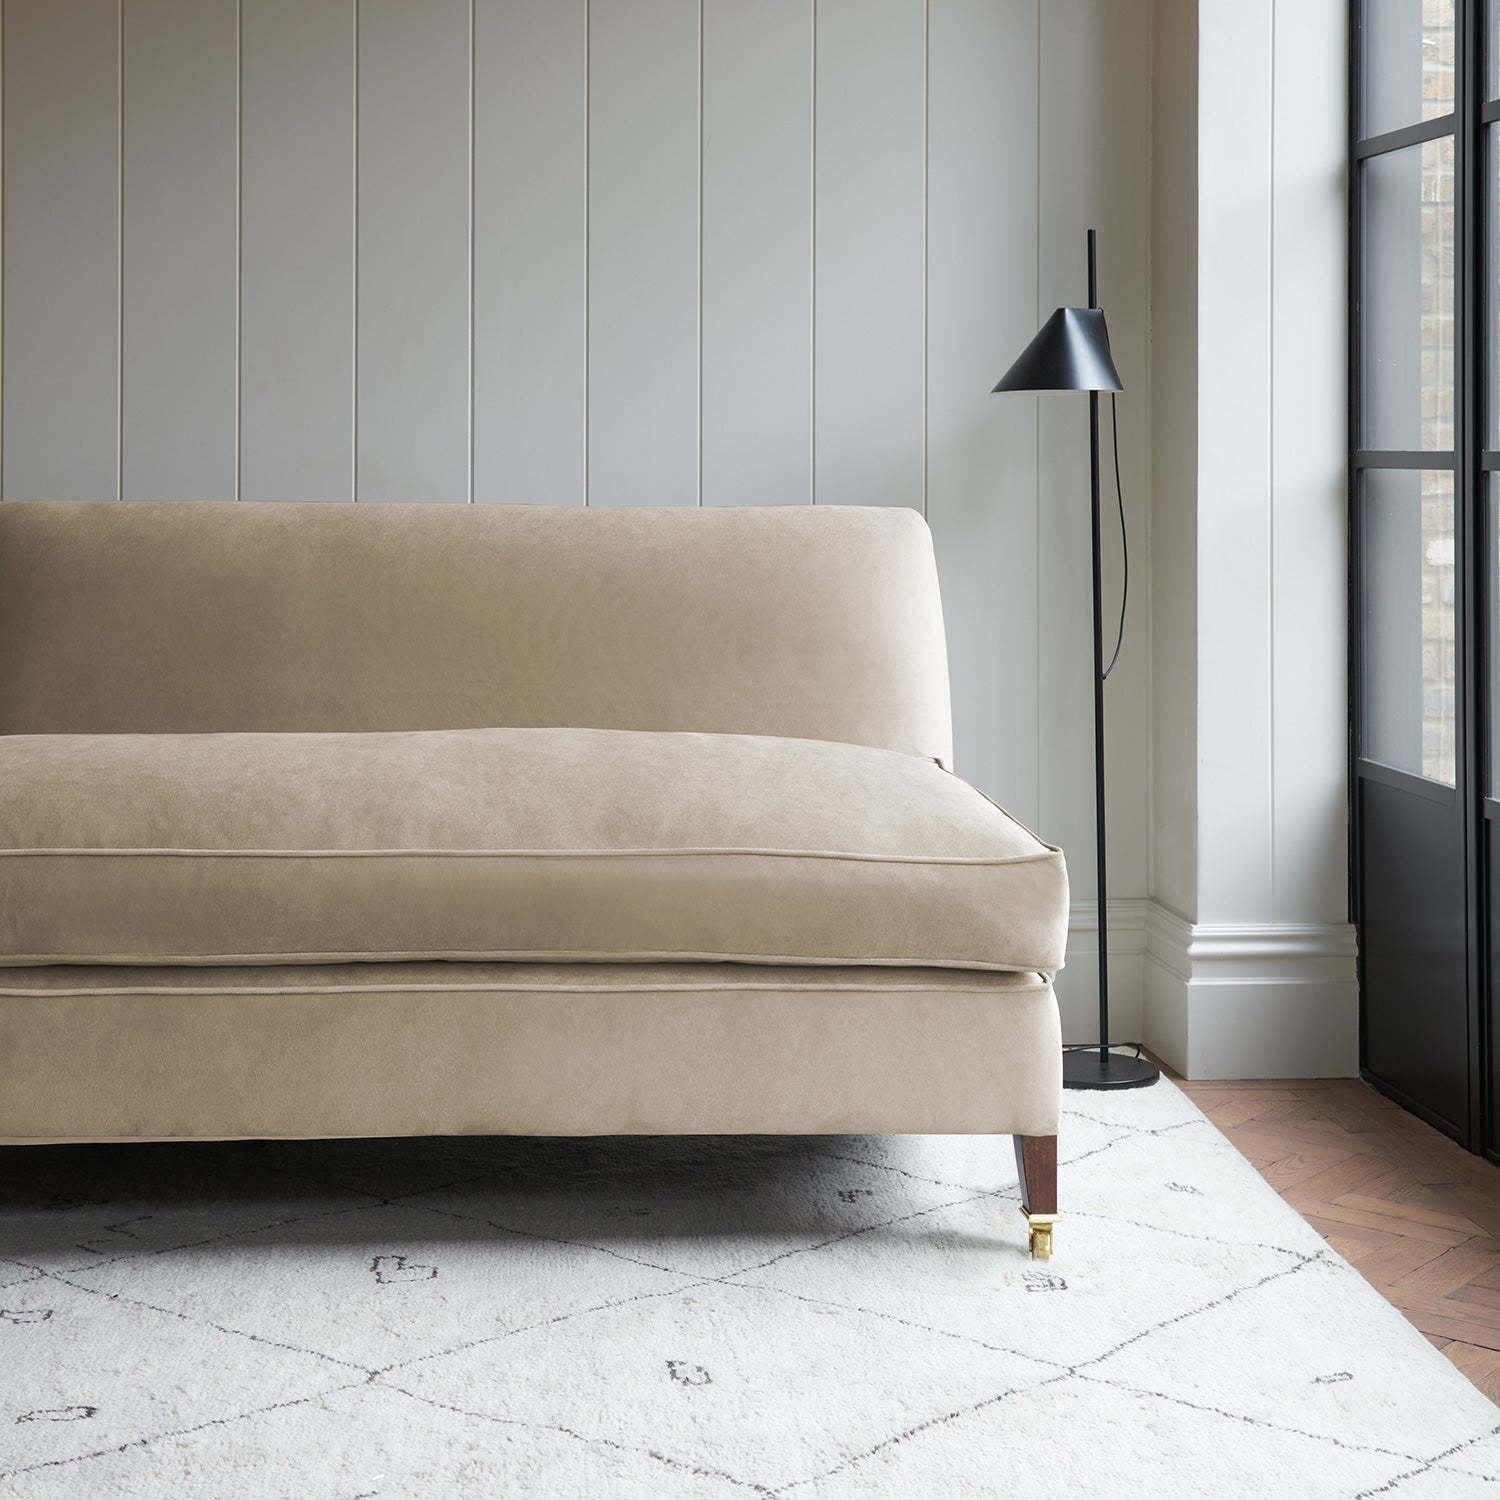 Velvet sofa in a cream velvet fabric with stain resistant finish